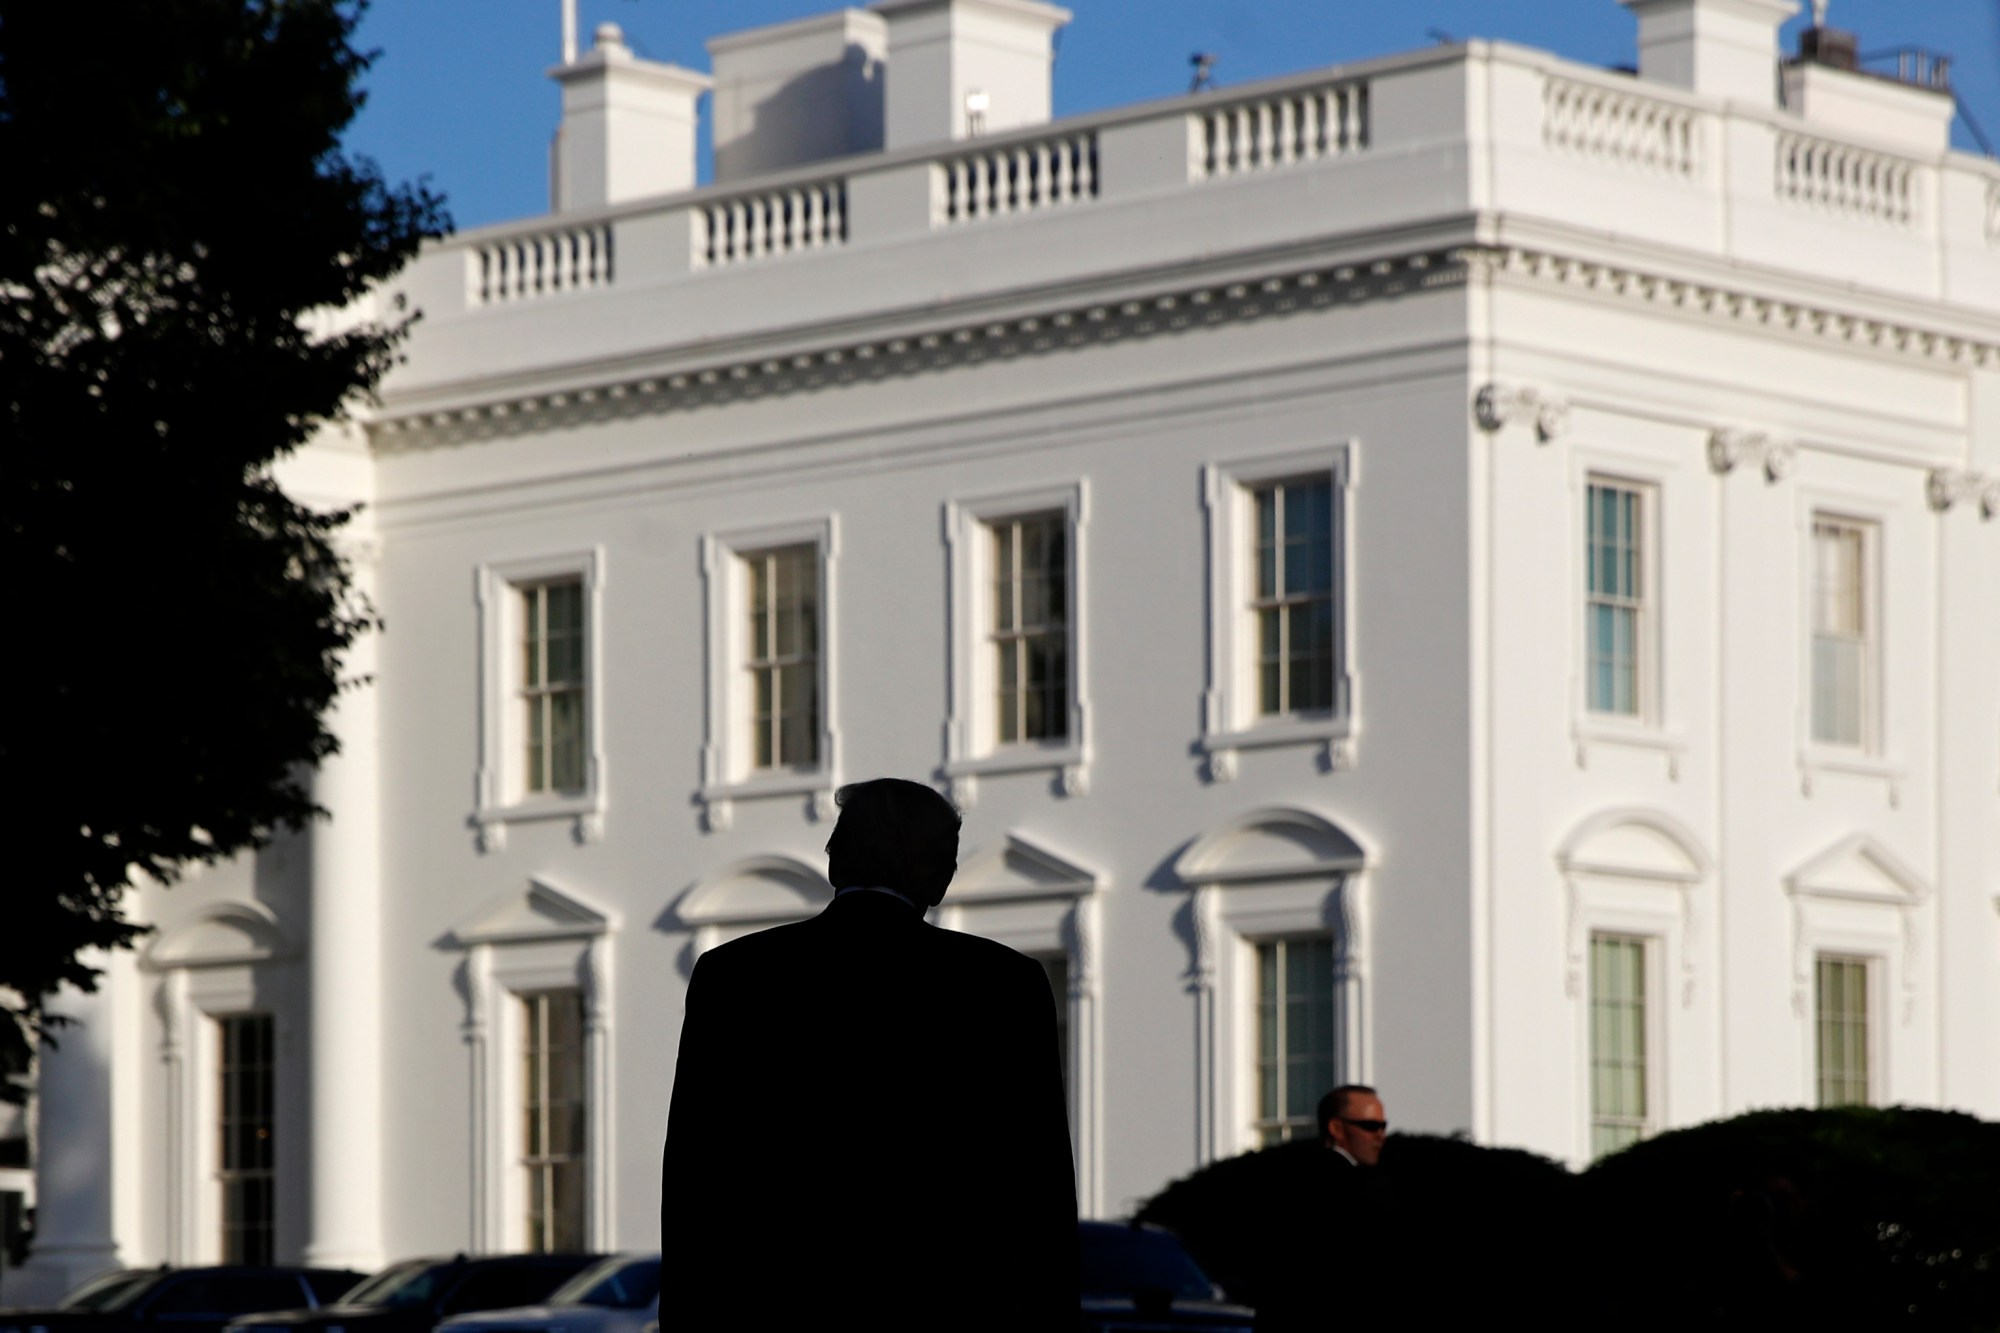 In this June 1, 2020, photo President Donald Trump returns to the White House after visiting outside St. John's Church in Washington. (AP Photo/Patrick Semansky, File)